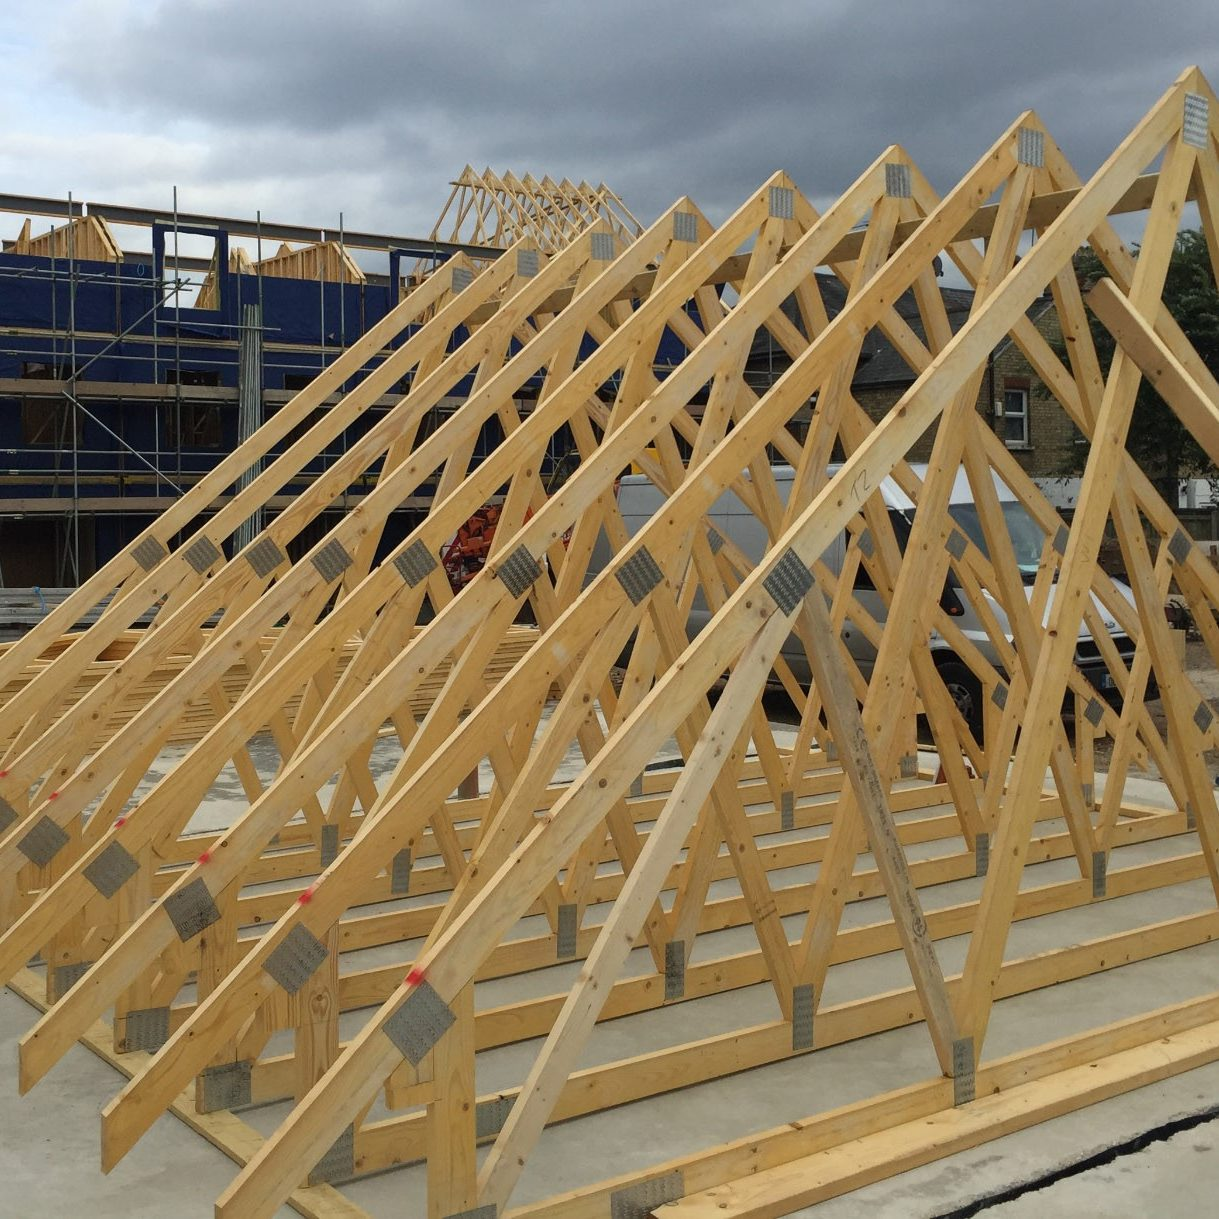 image from: https://www.mbctimberframe.co.uk/roof-trusses